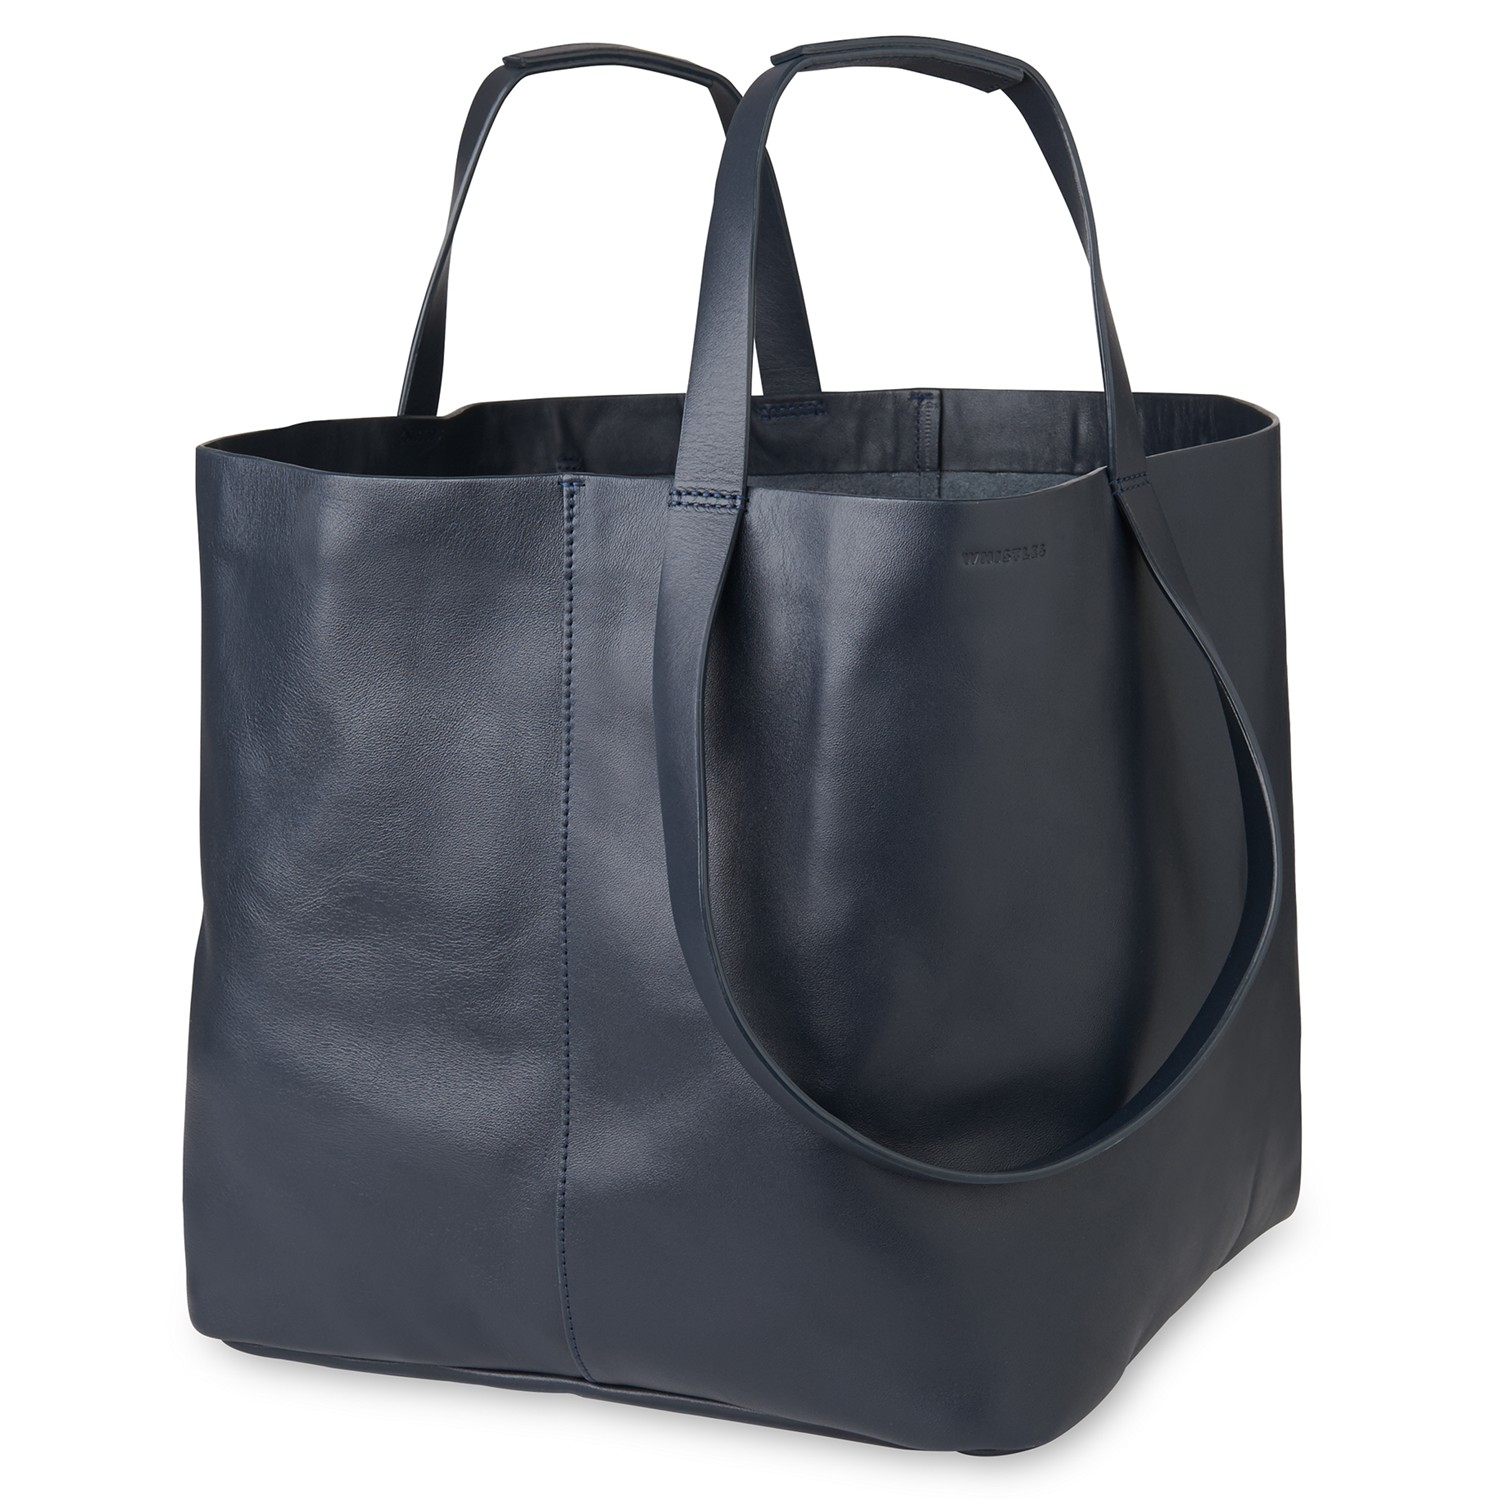 03964f67b3 Whistles Java Oversized Tote Bag in Black - Lyst